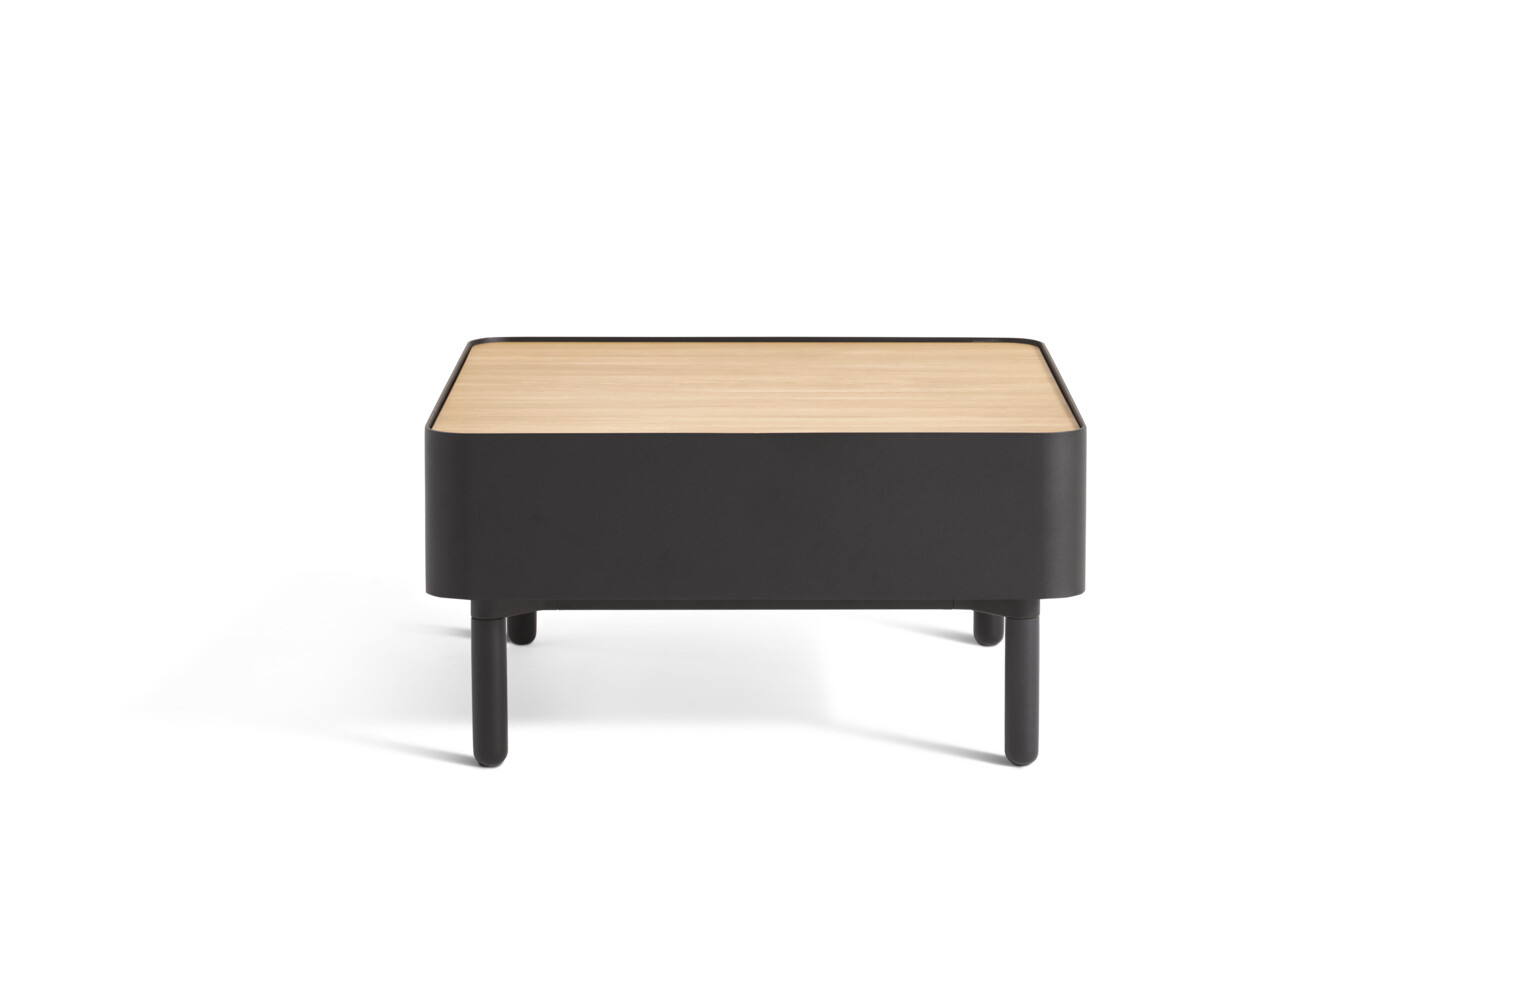 Gispen STEE coffee table with black frame and oak tabletop front view